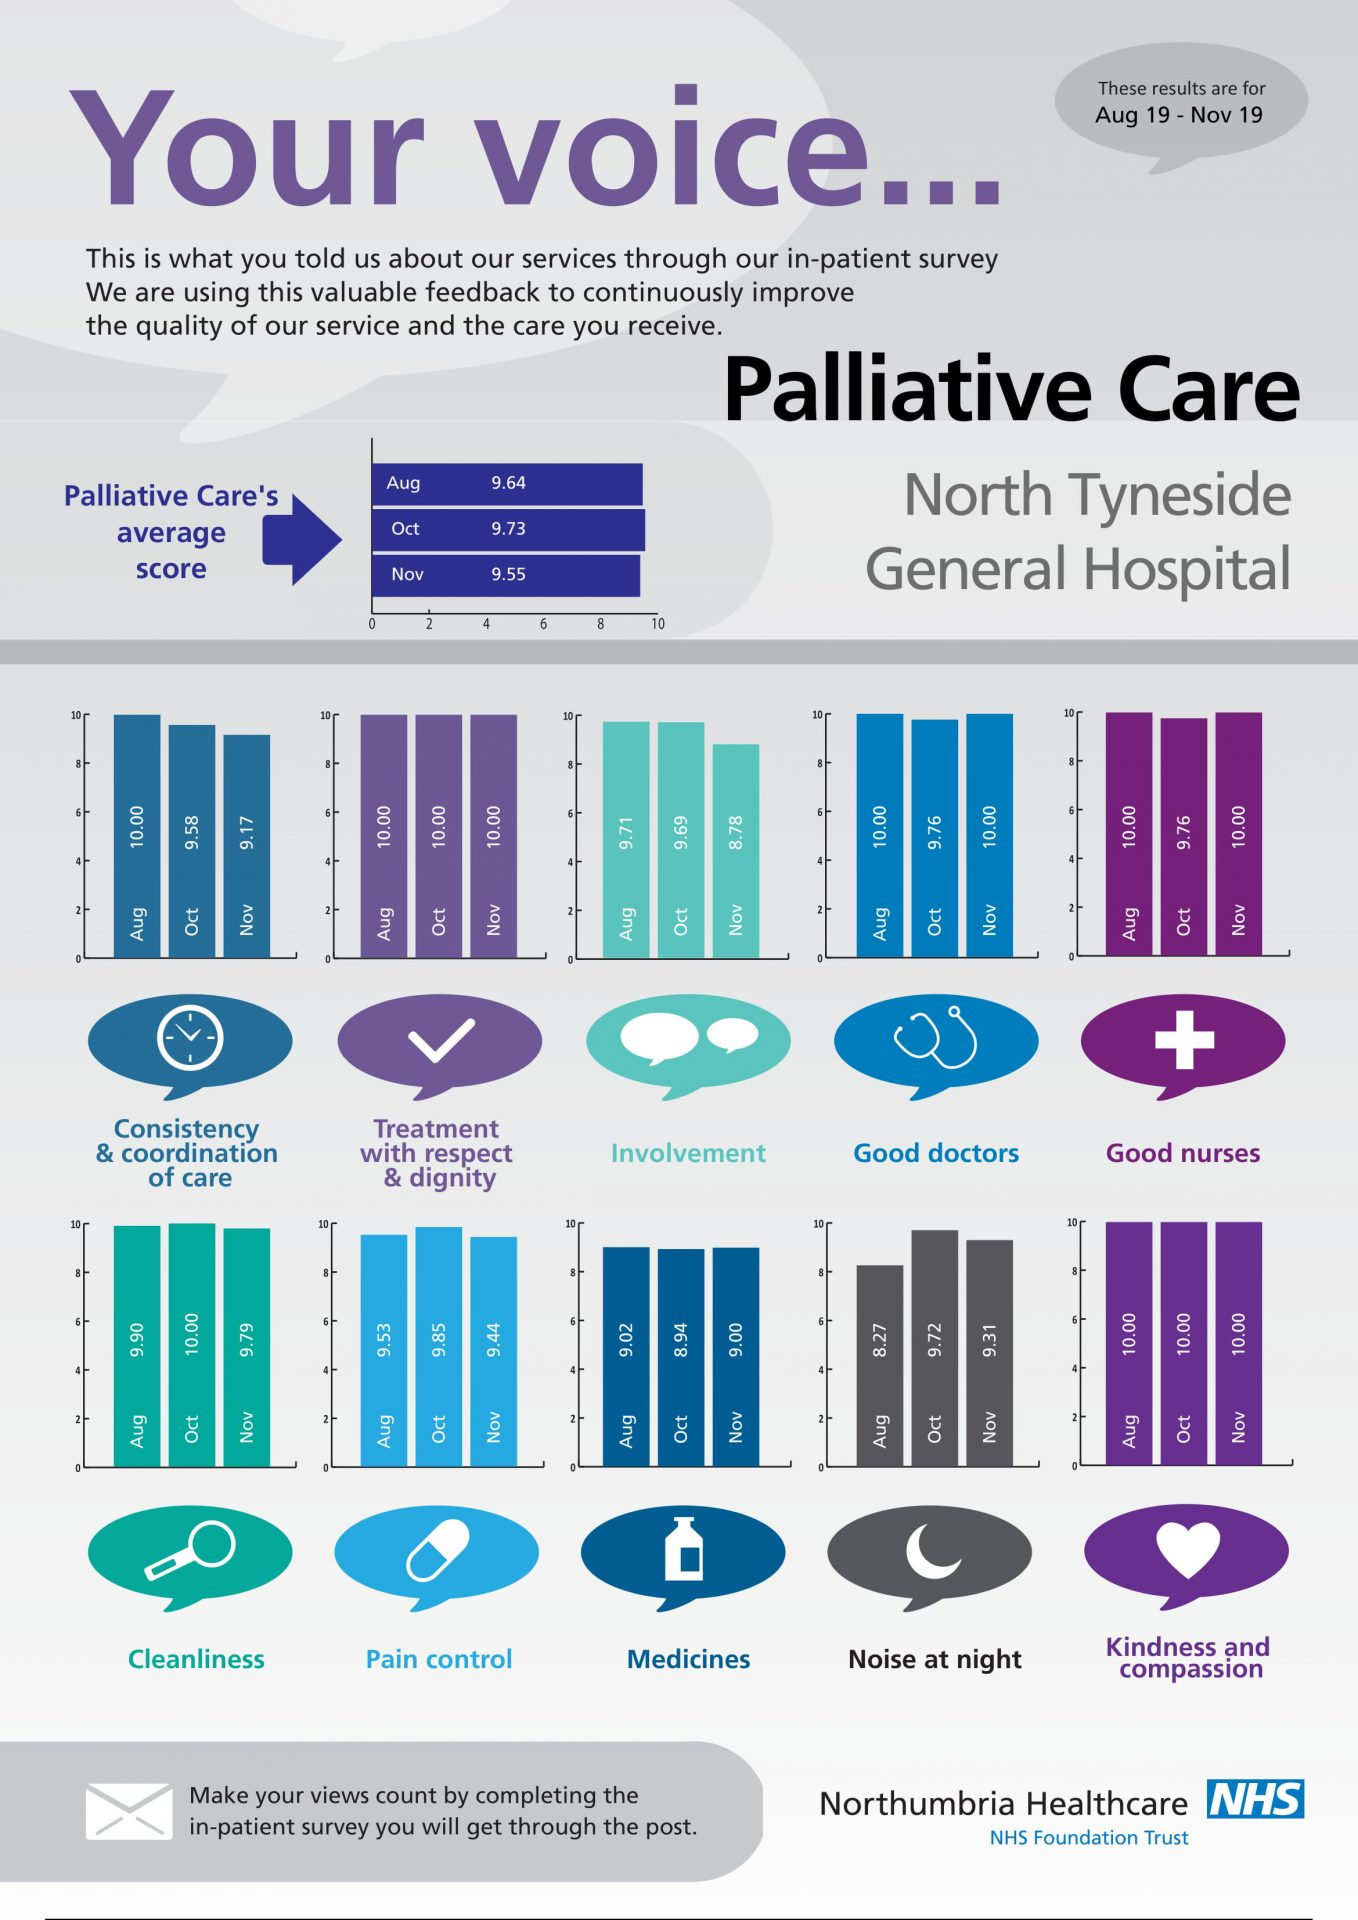 North Tyneside General Hospital - Palliative Care-1